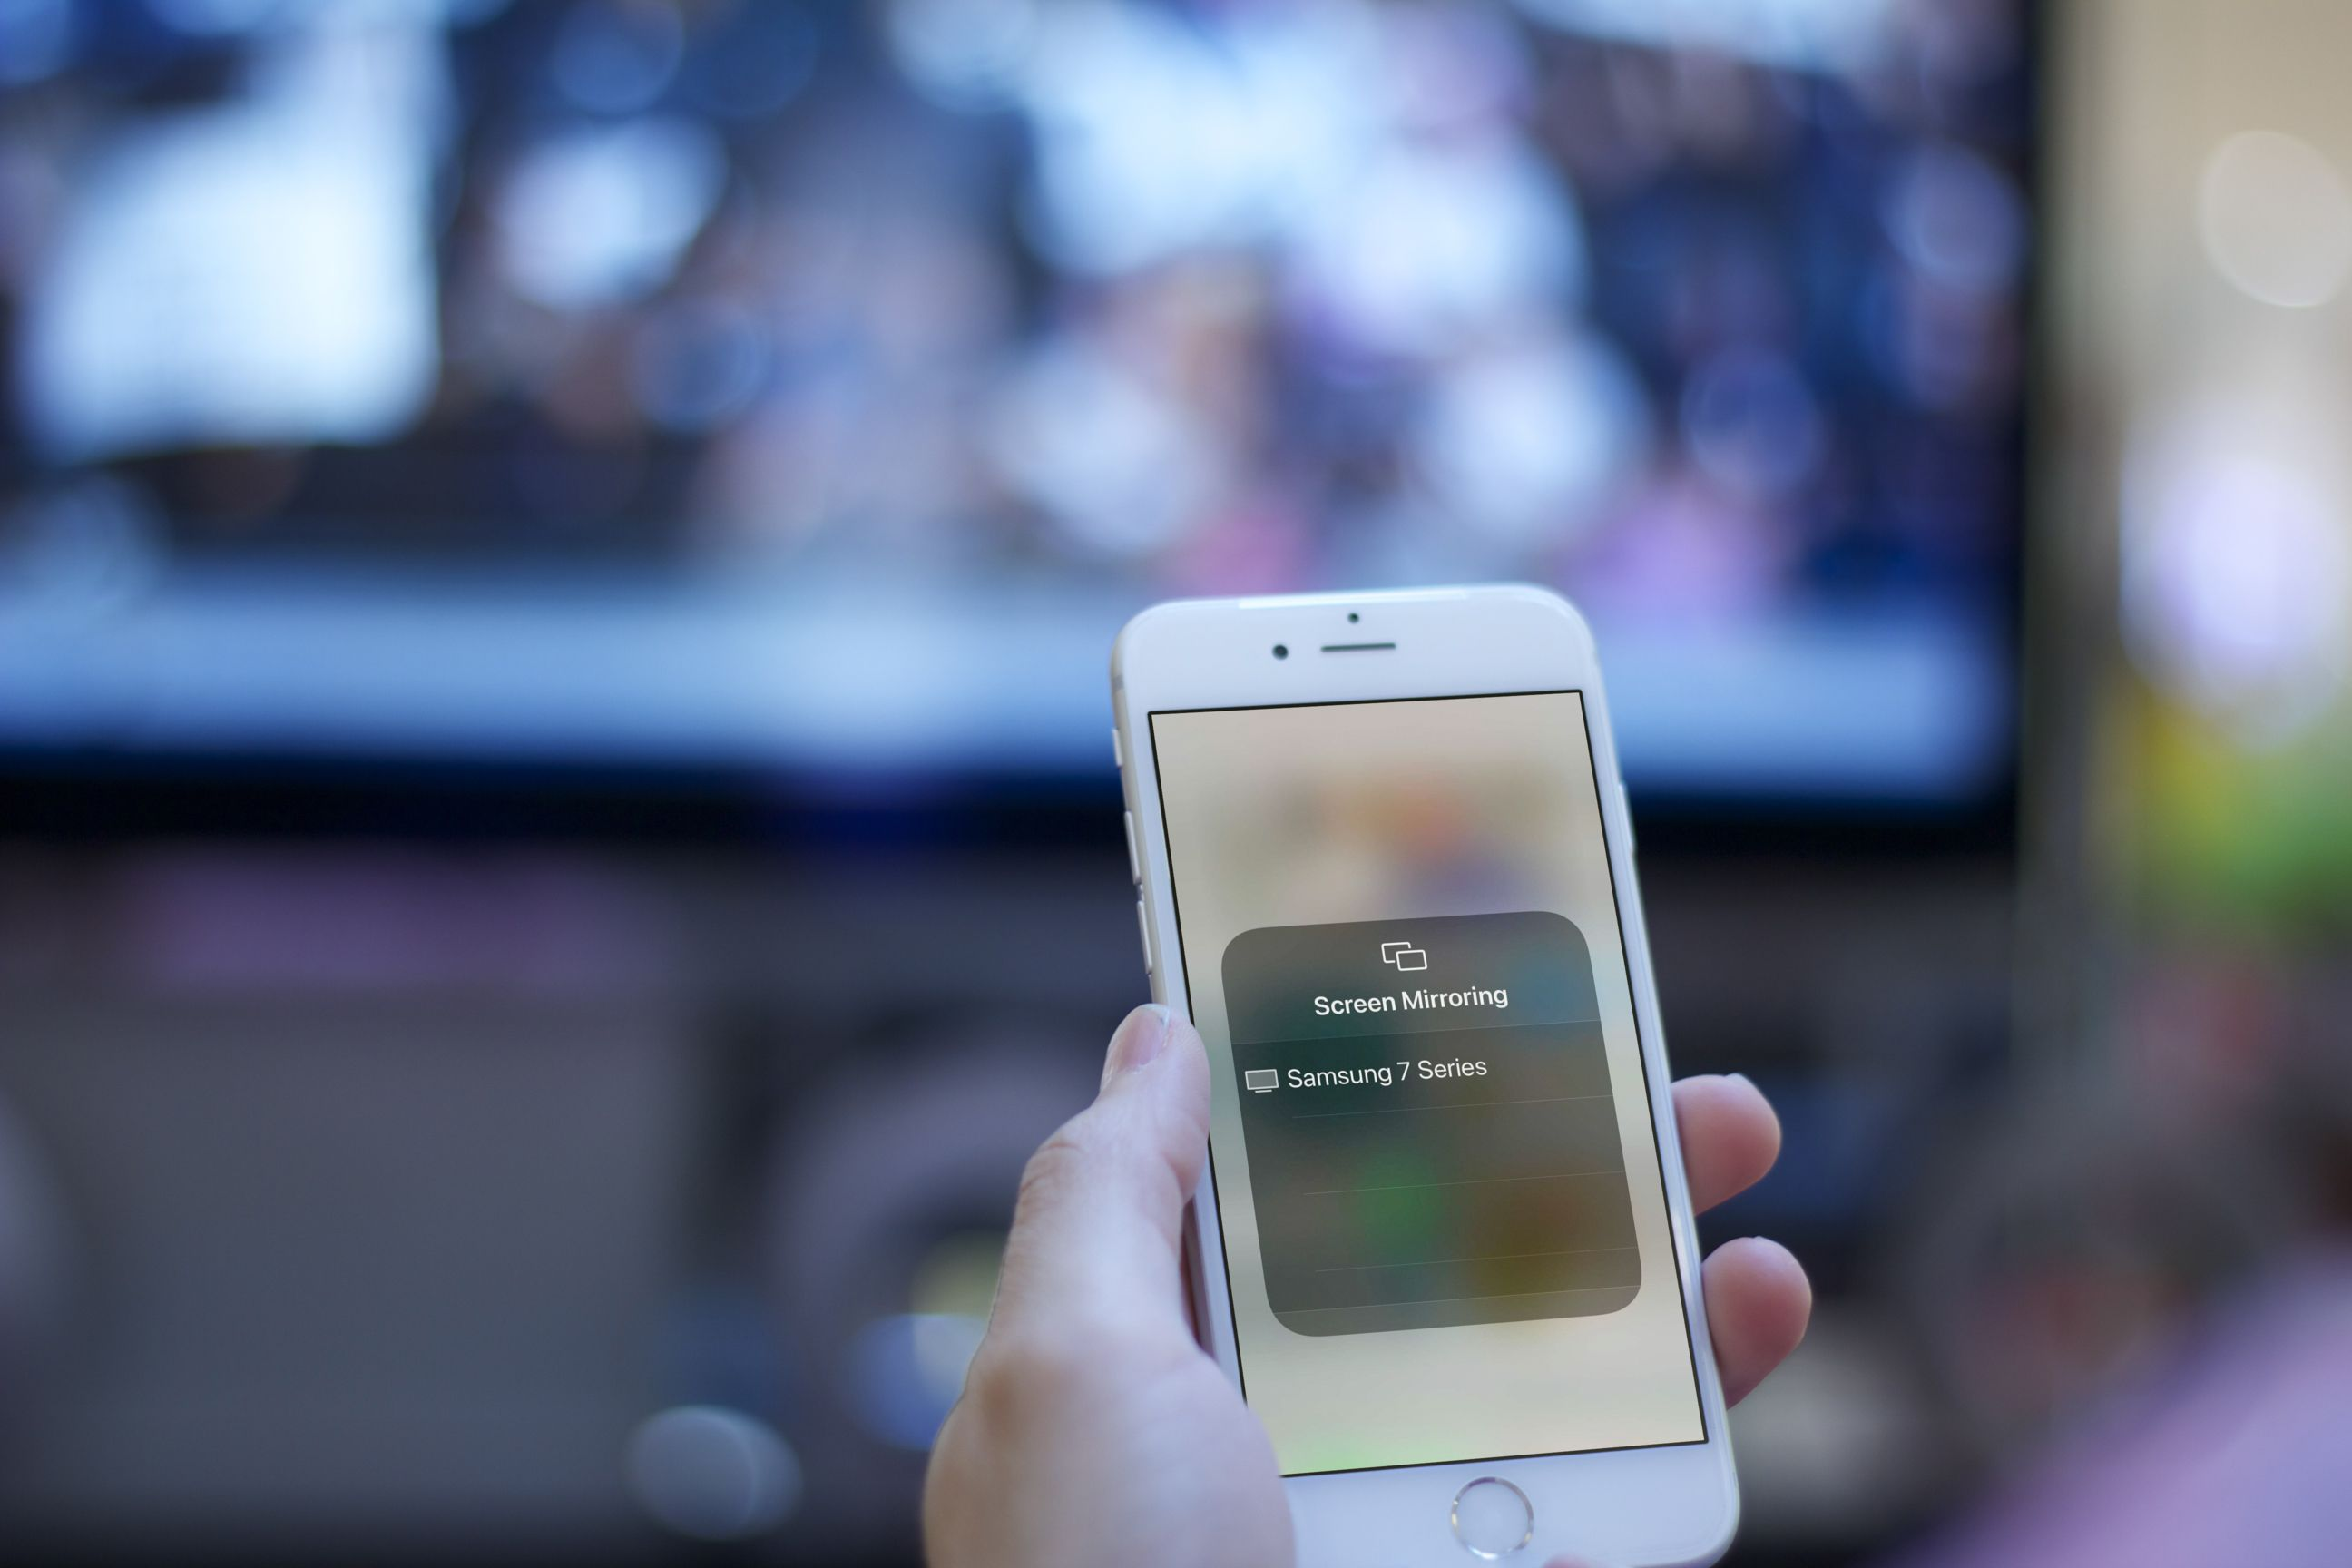 An Iphone To A Tv Without Apple, How To Mirror Iphone Samsung Tv Free Without Apple